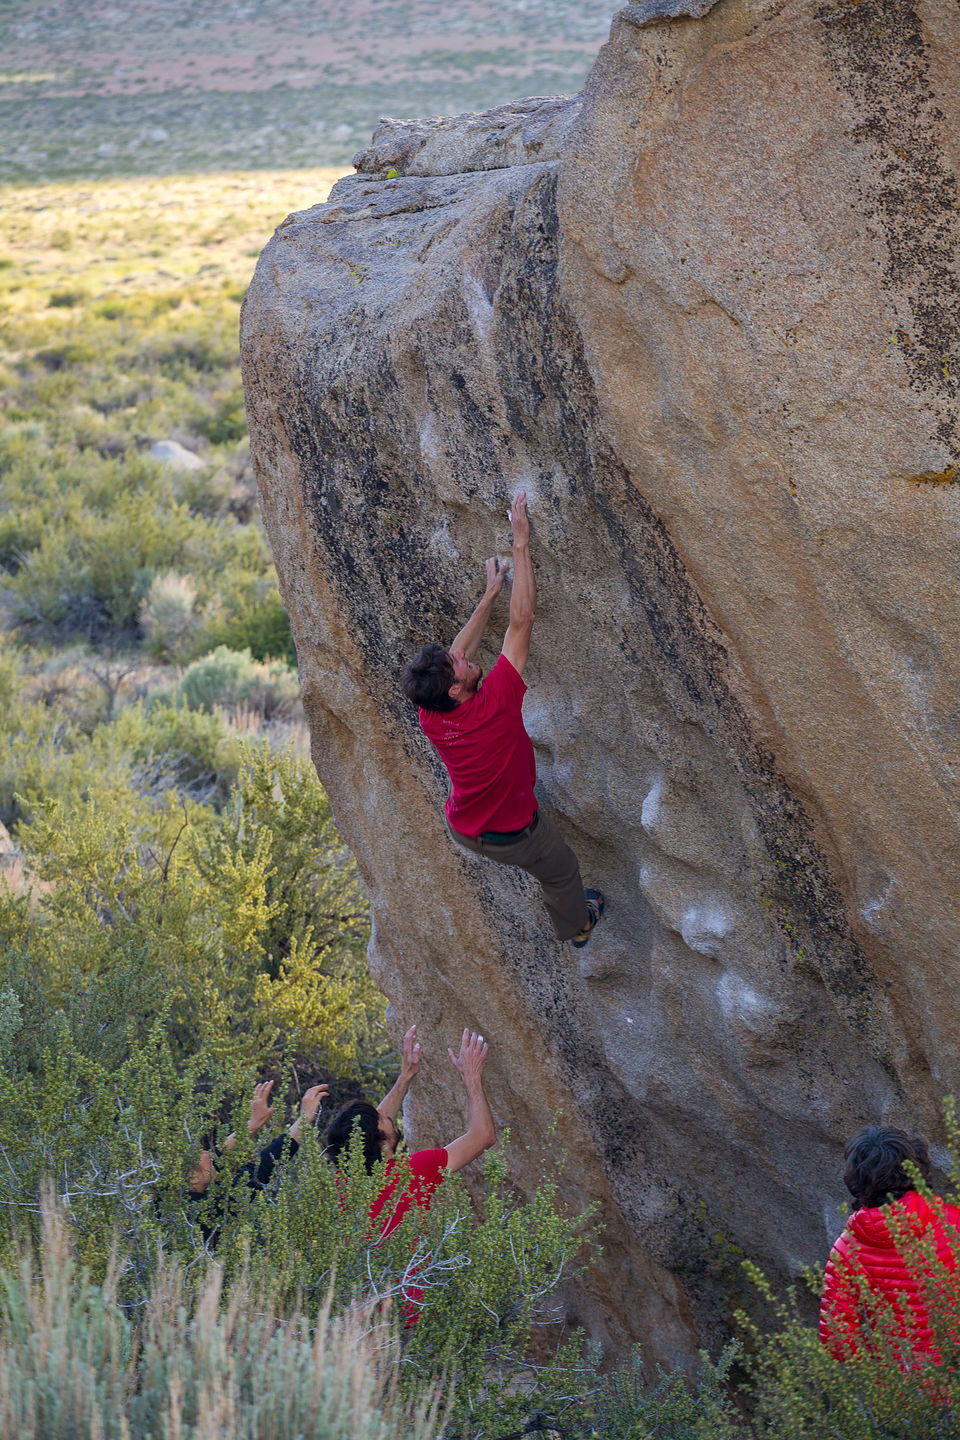 Tommy bouldering in the Buttermilks